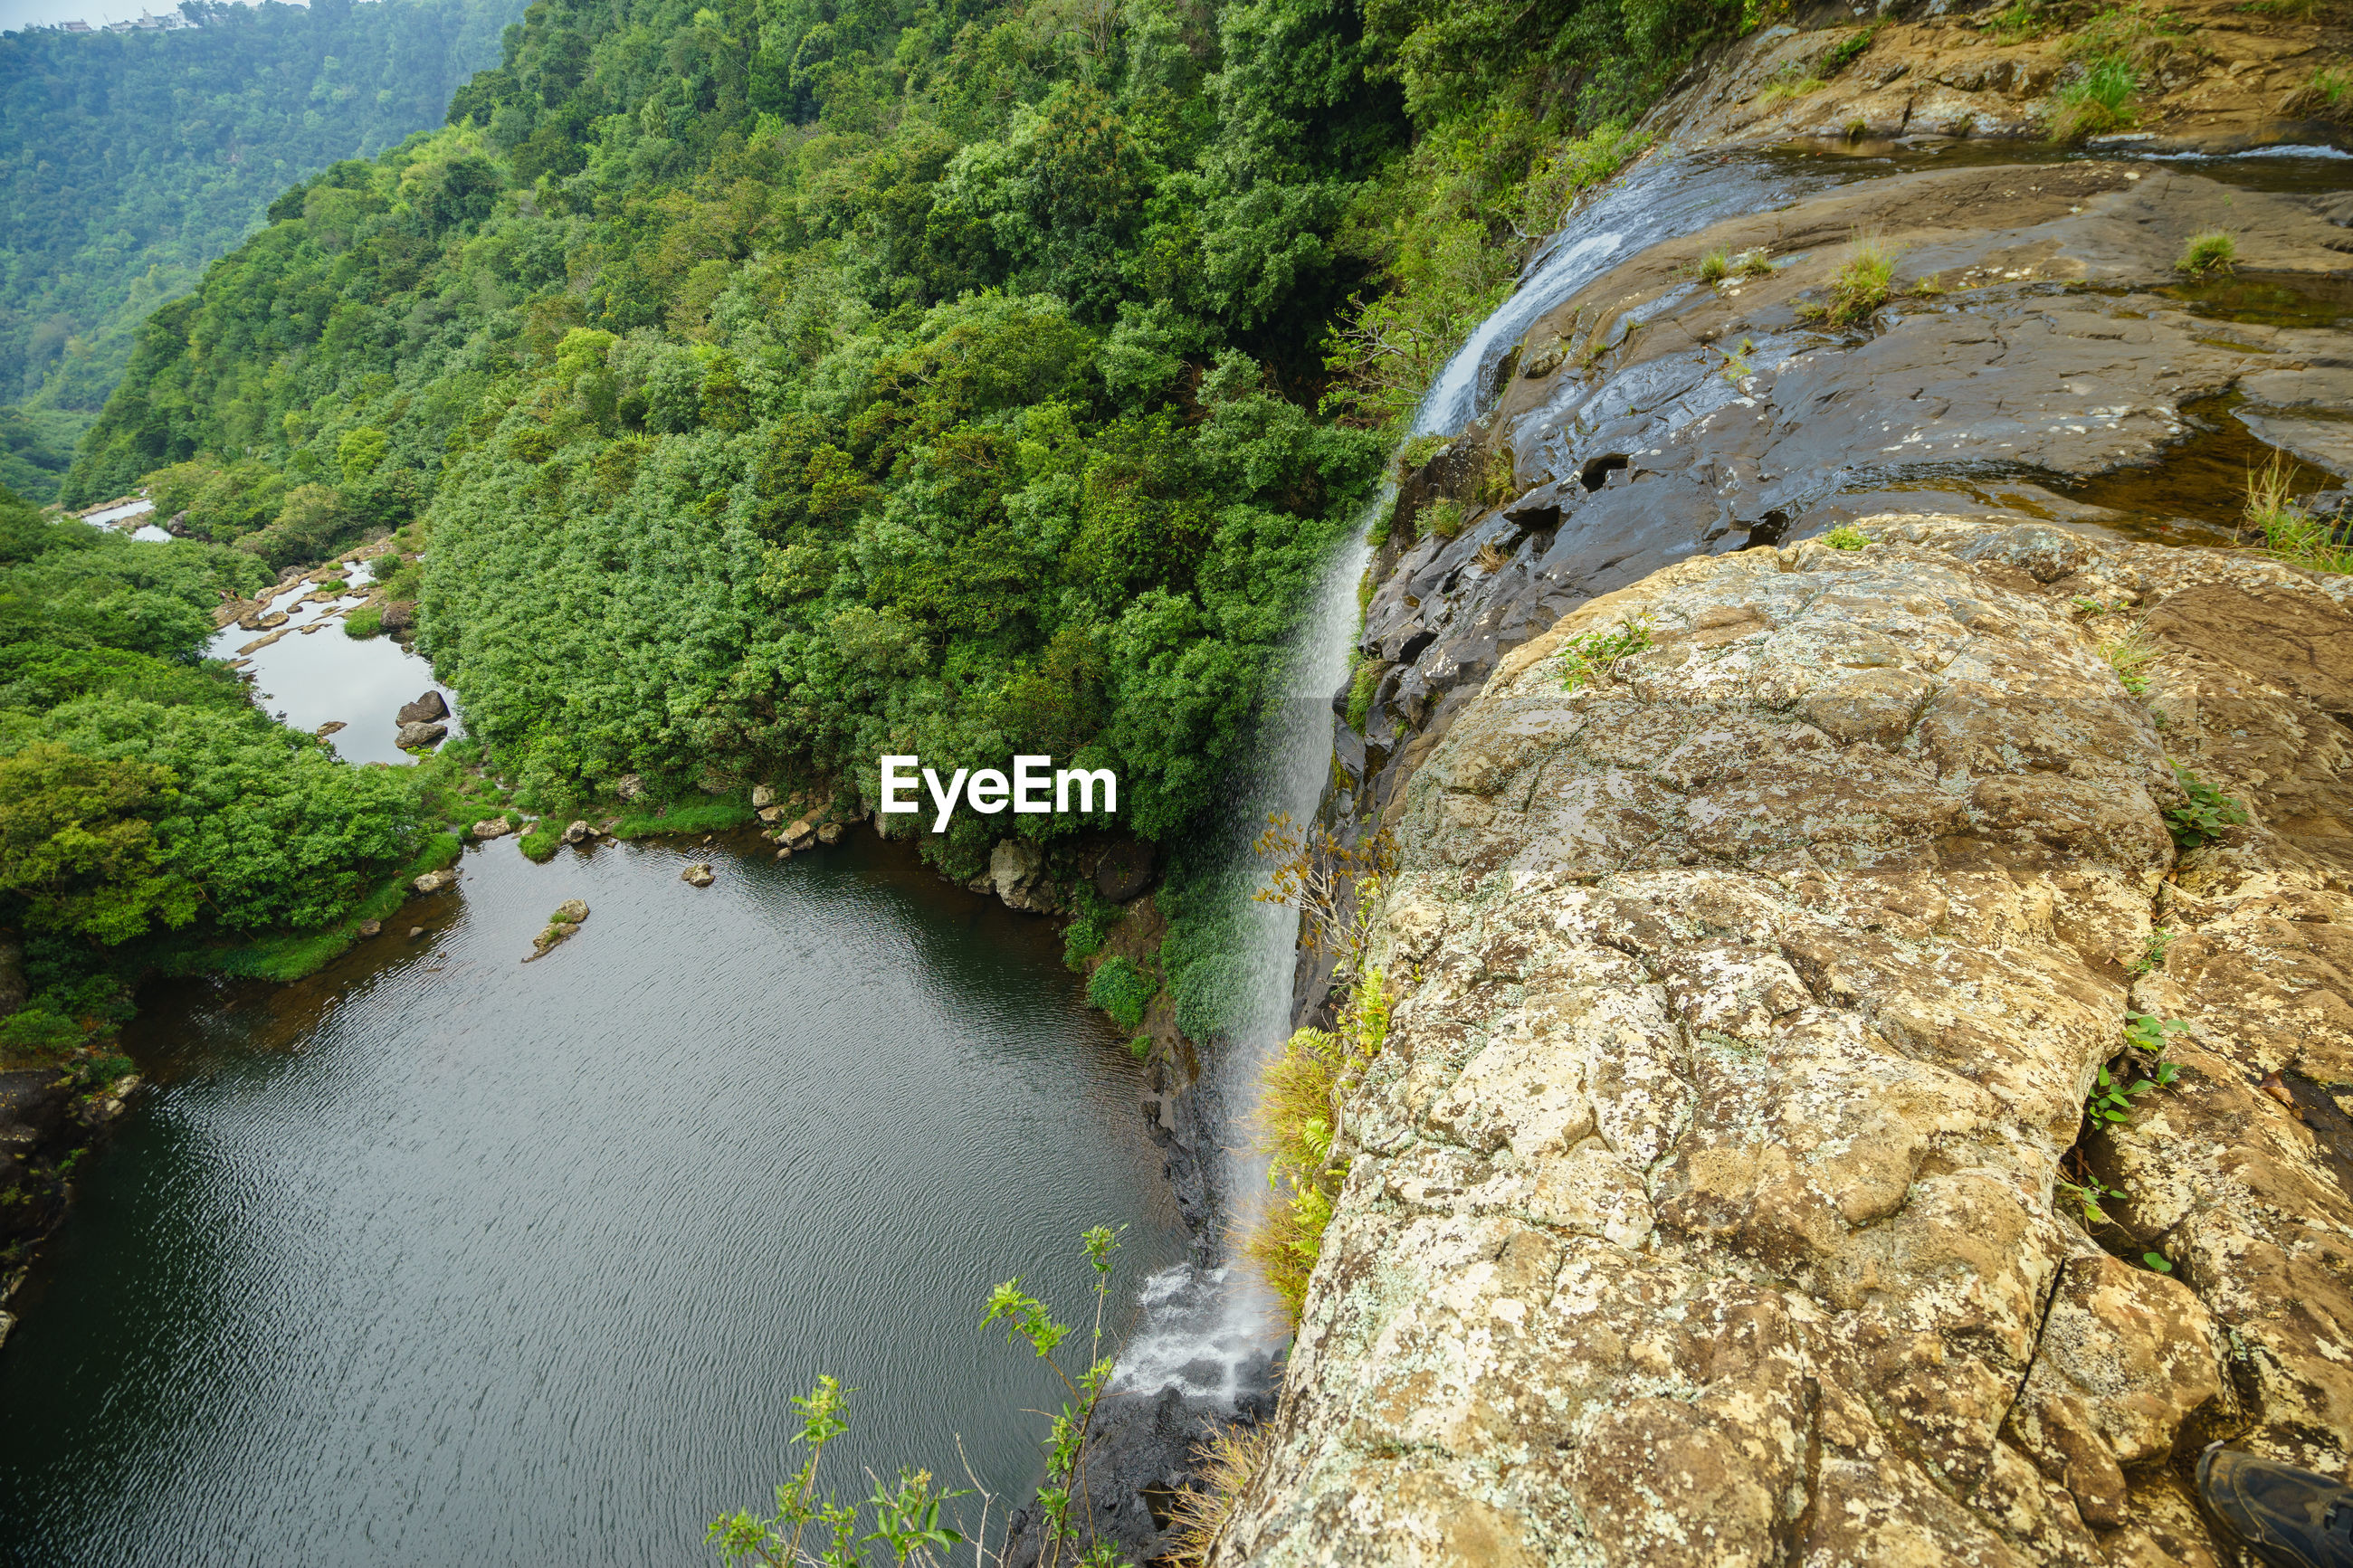 HIGH ANGLE VIEW OF RIVER FLOWING AMIDST TREES